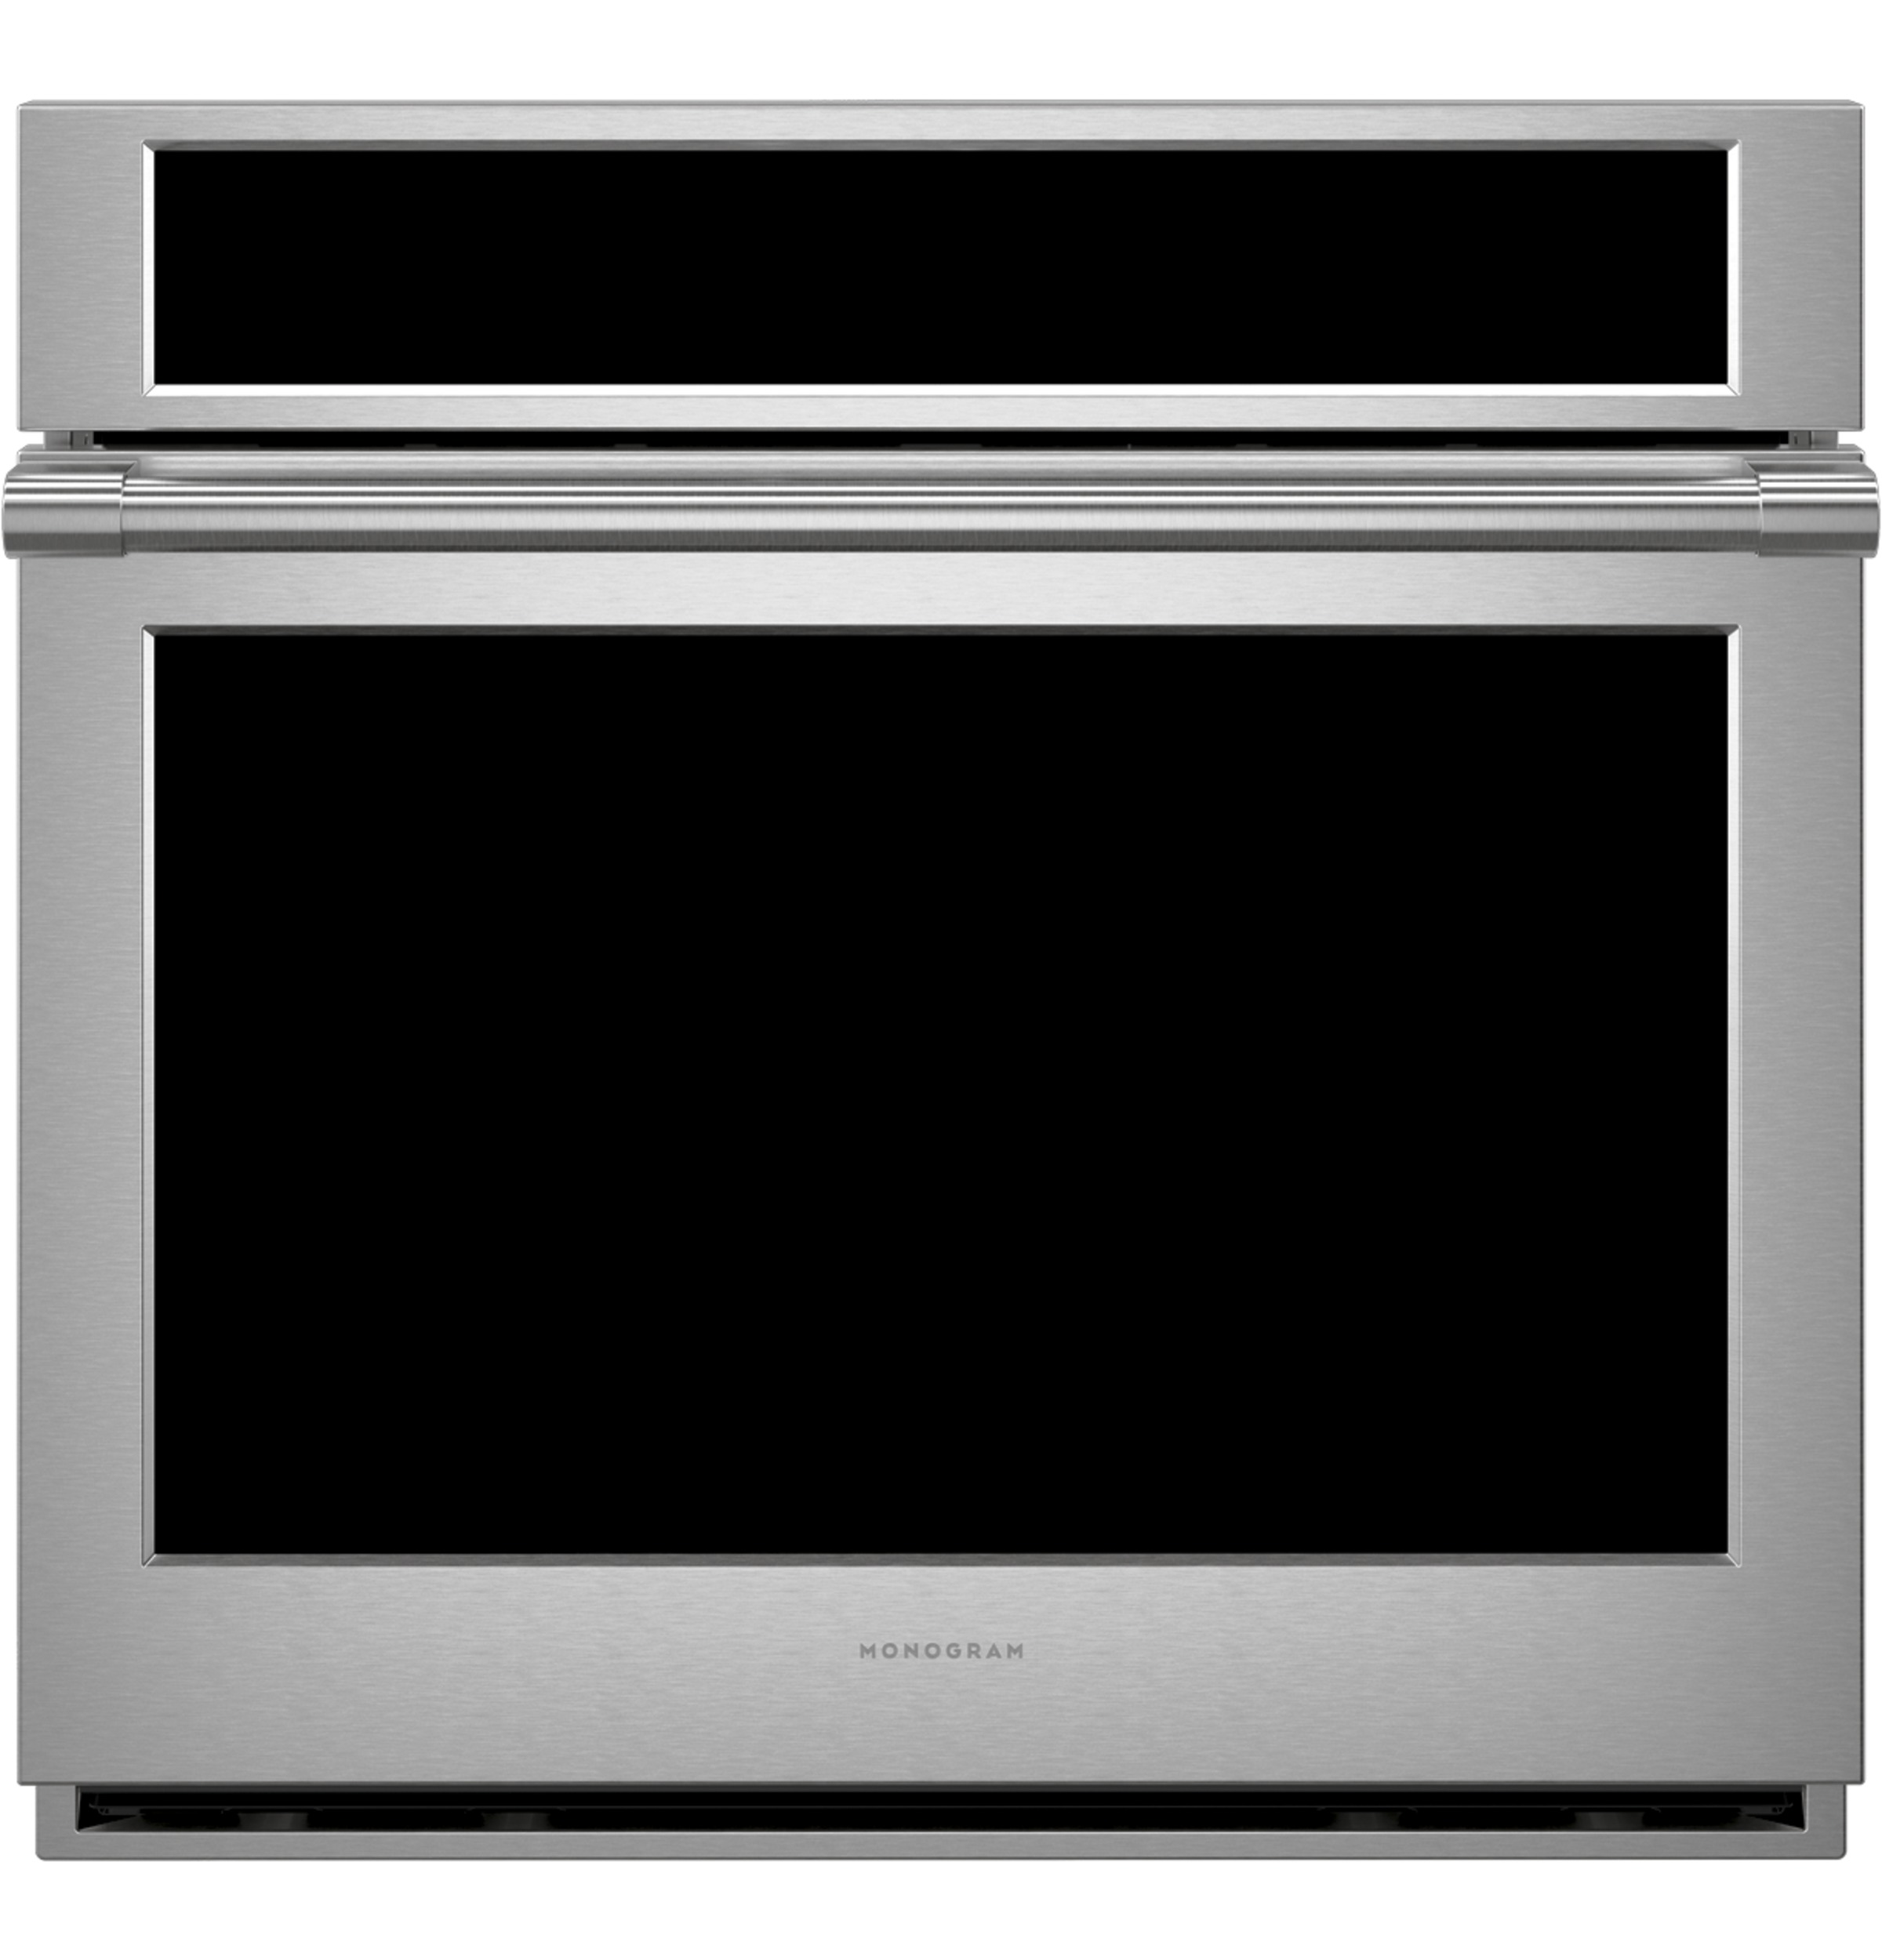 "Monogram Monogram 30"" Smart Electric Convection Single Wall Oven Statement Collection"